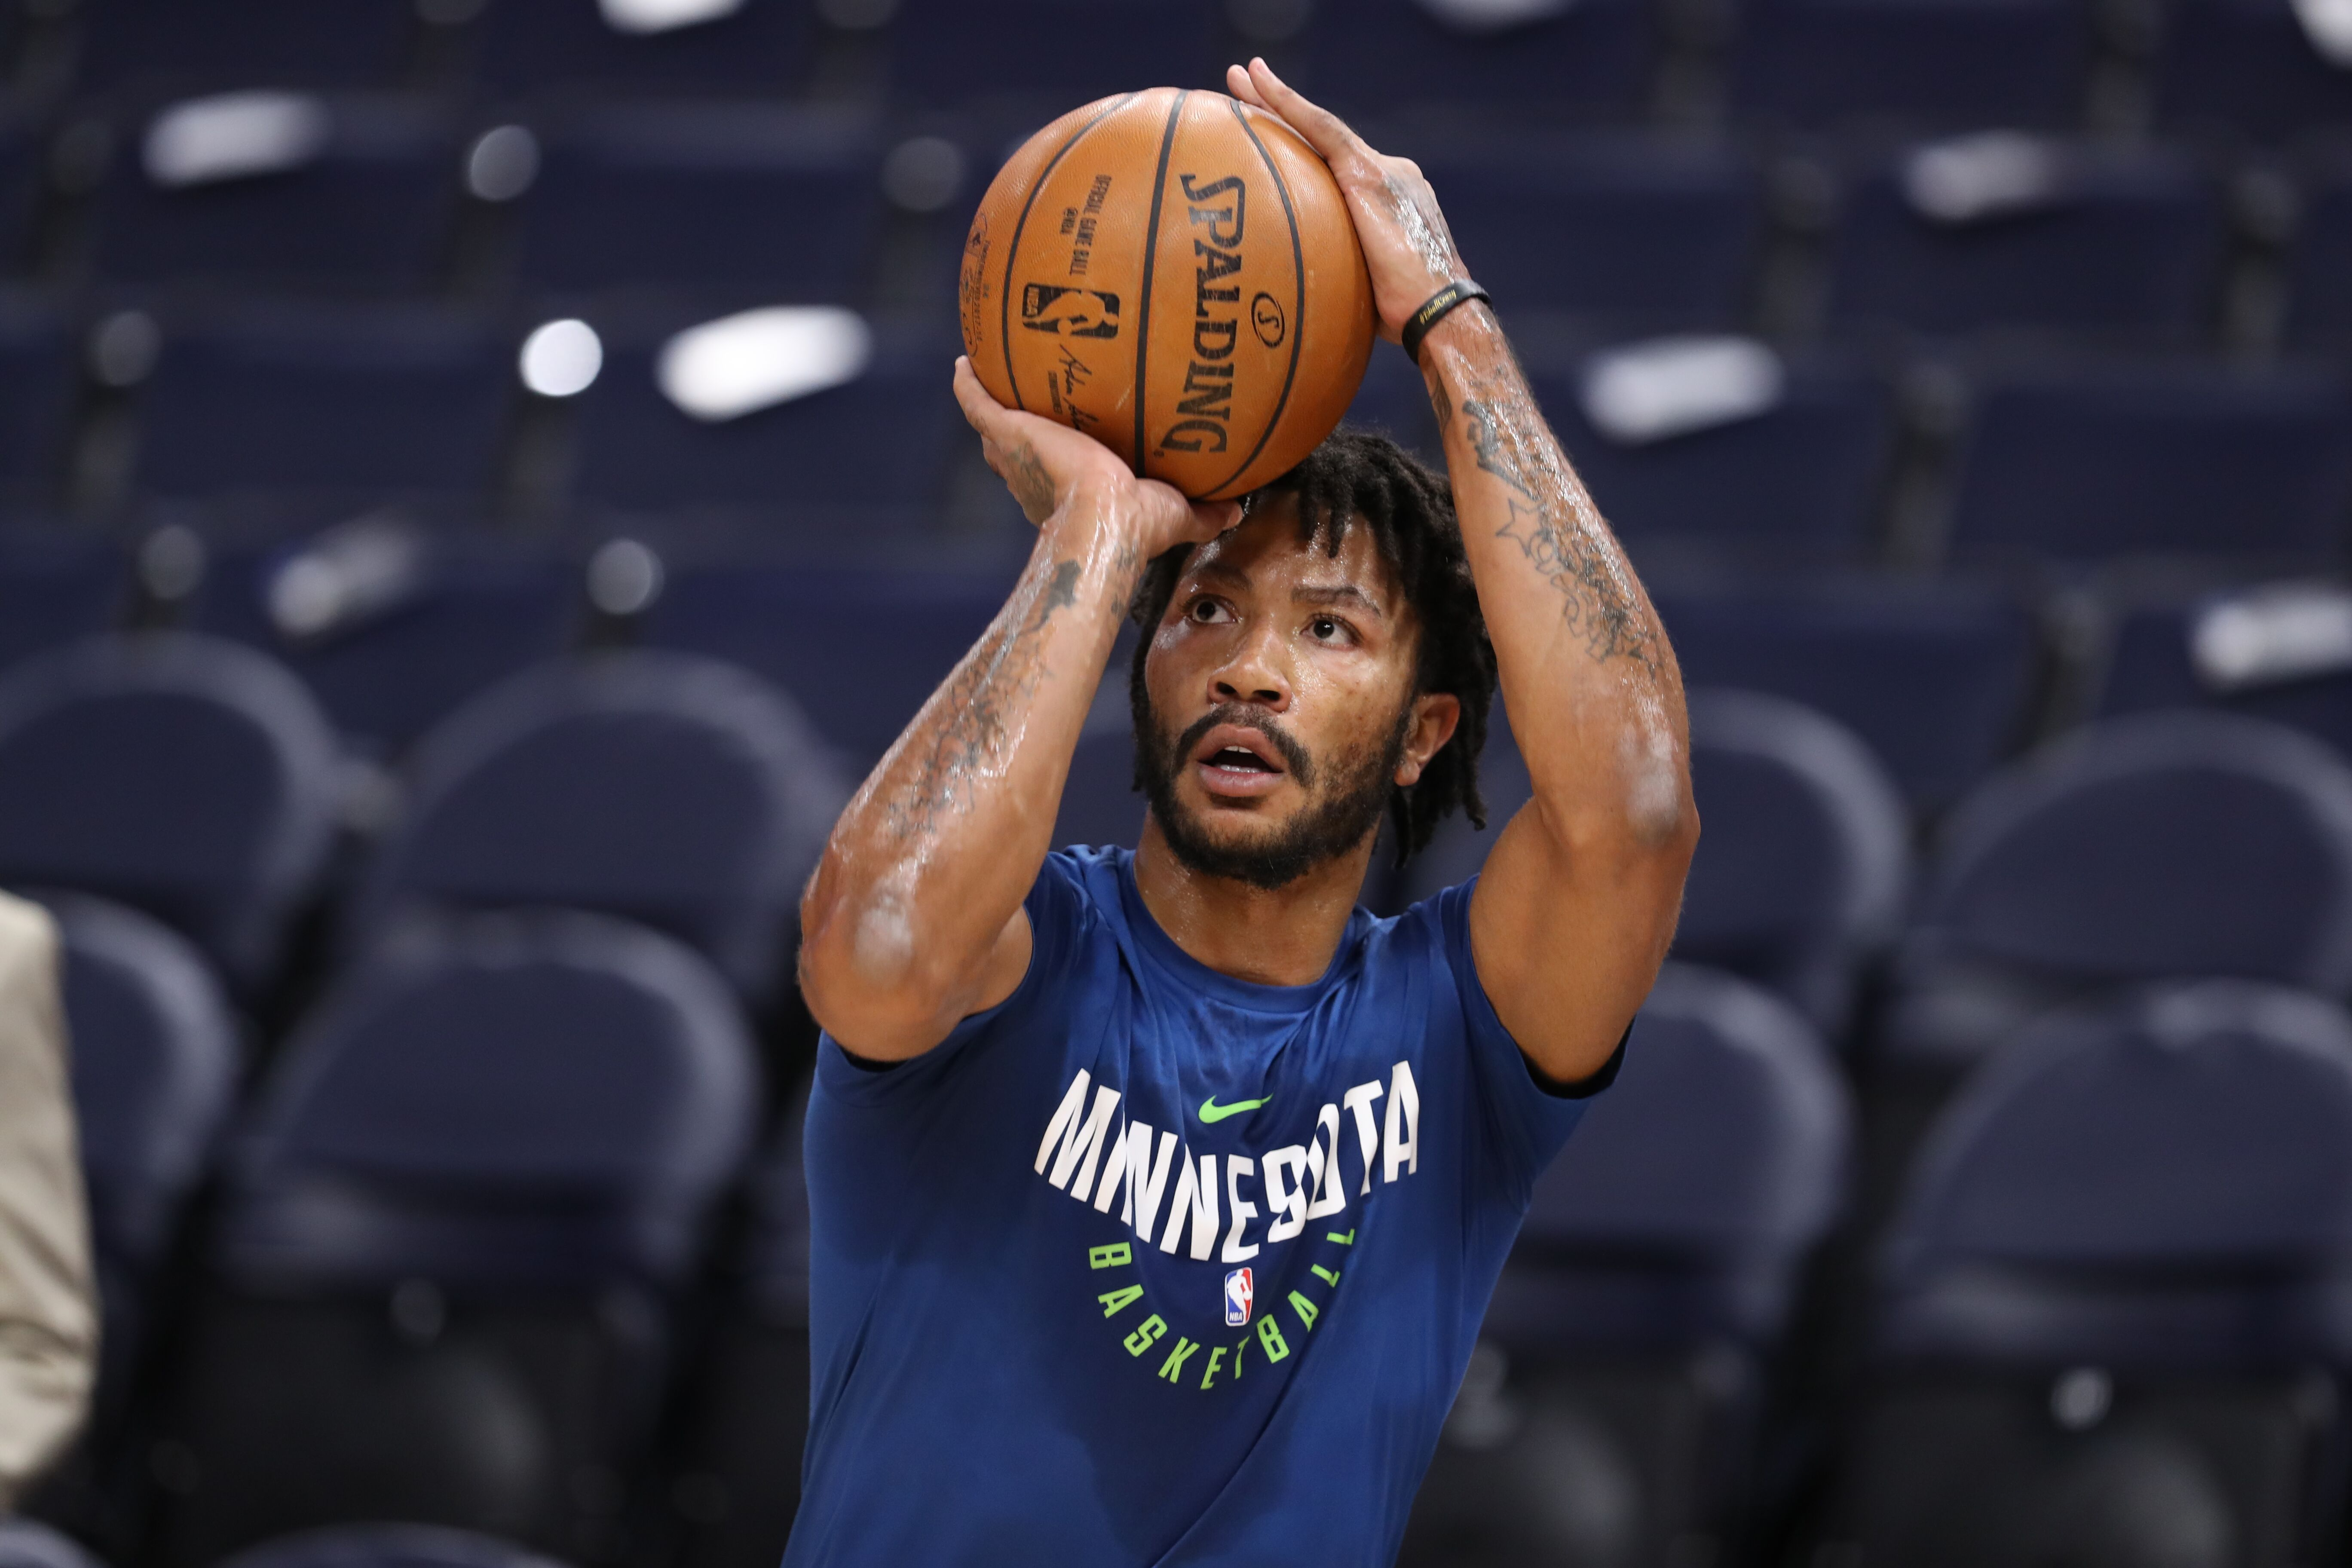 920ff83040f 3 takeaways from Derrick Rose signing with Minnesota Timberwolves